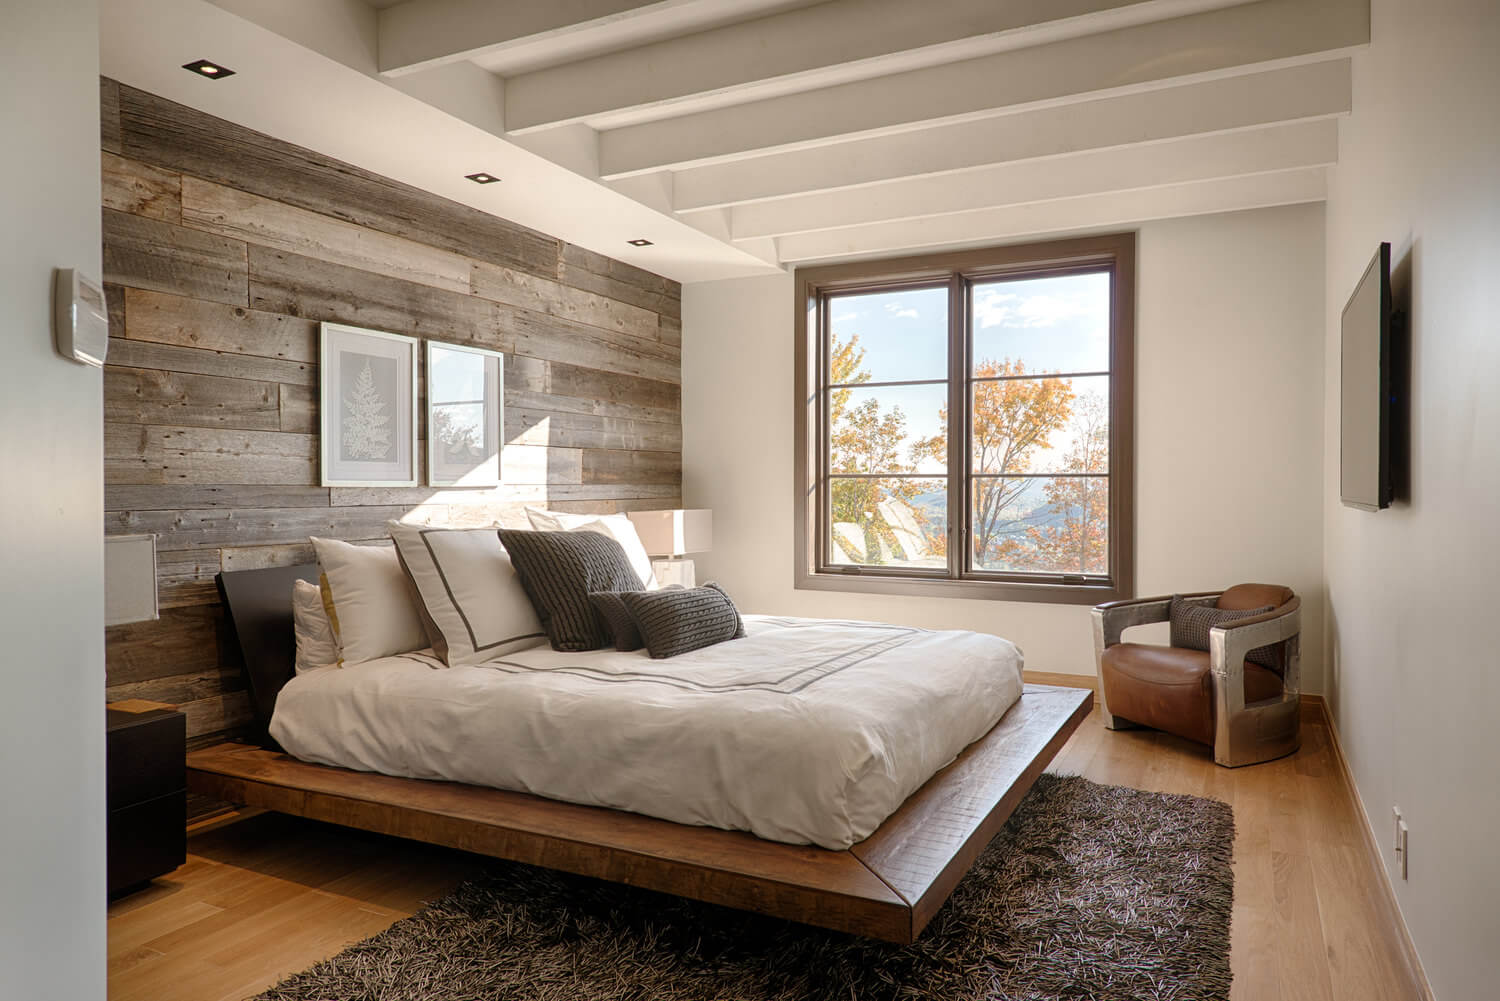 13 rustic bedroom design ideas - Chambre bois ...